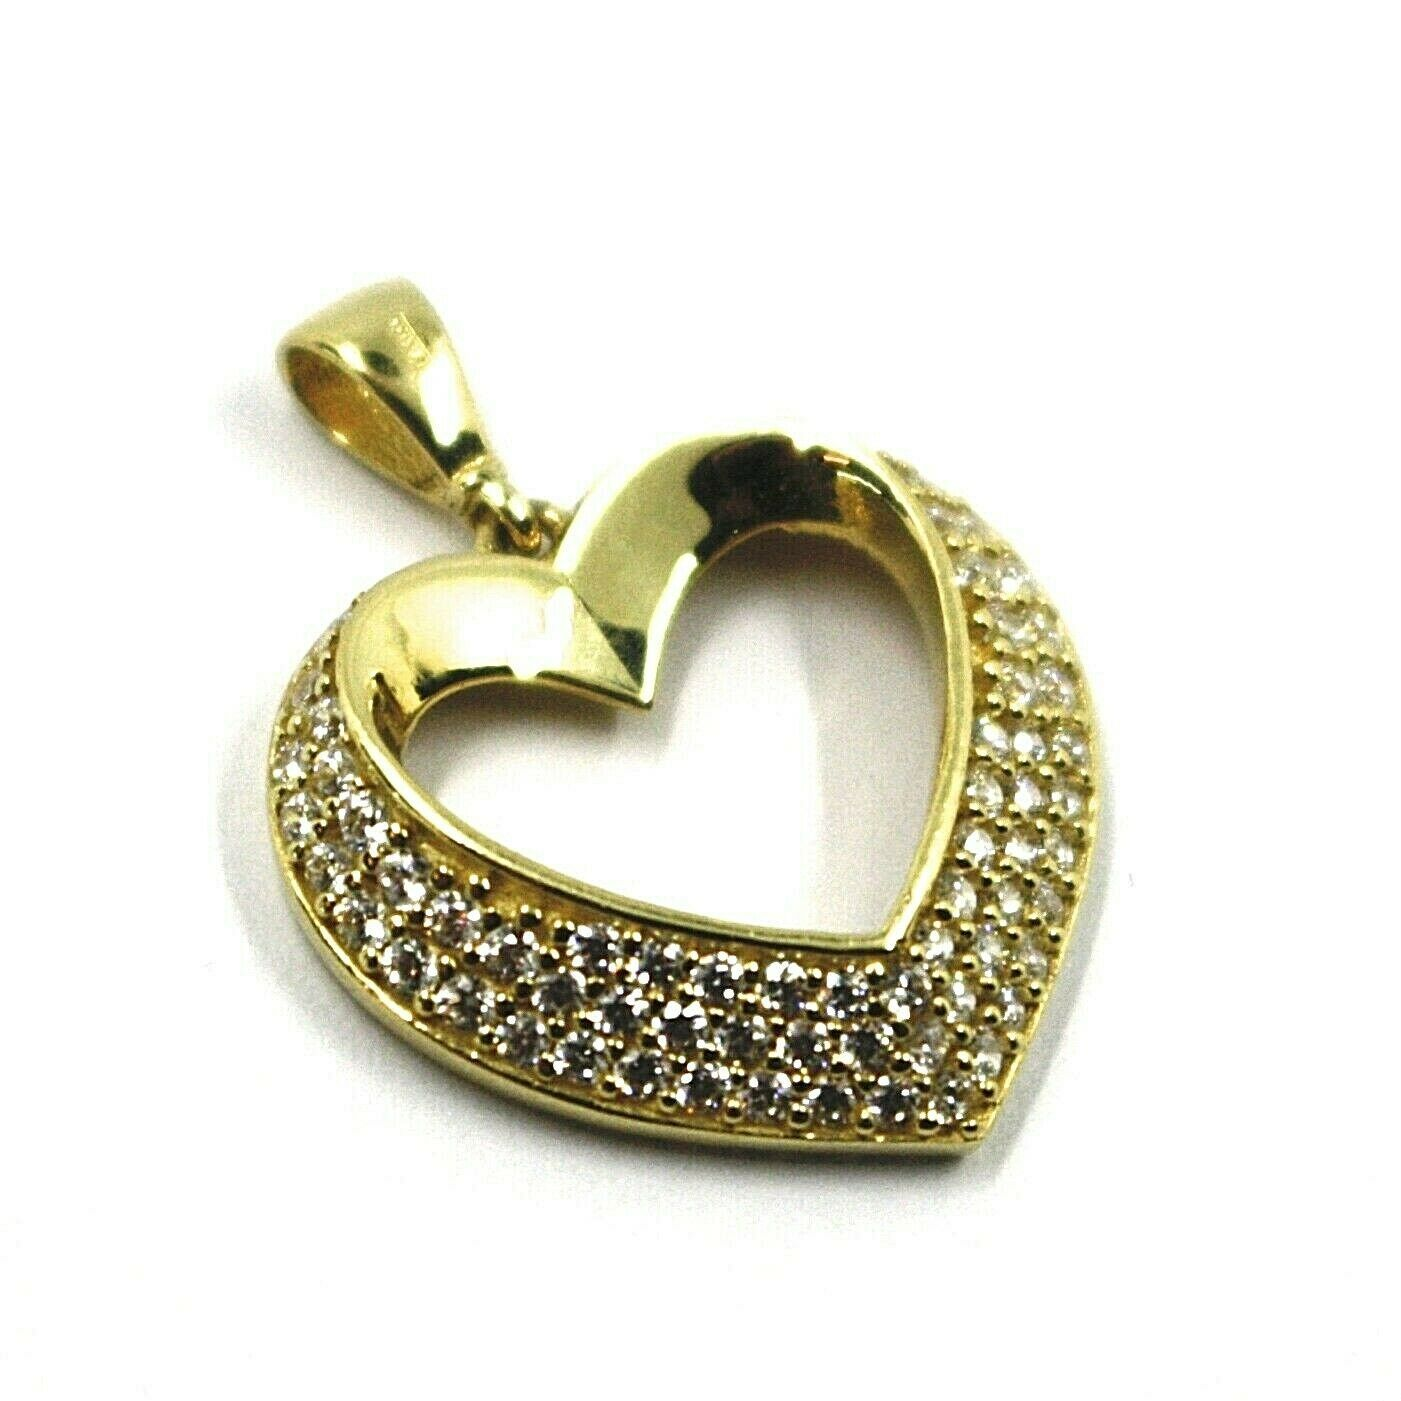 PENDANT GOLD 750 18K, YELLOW, PENDANT, HEART, THREE ROWS OF ZIRCON CUBIC